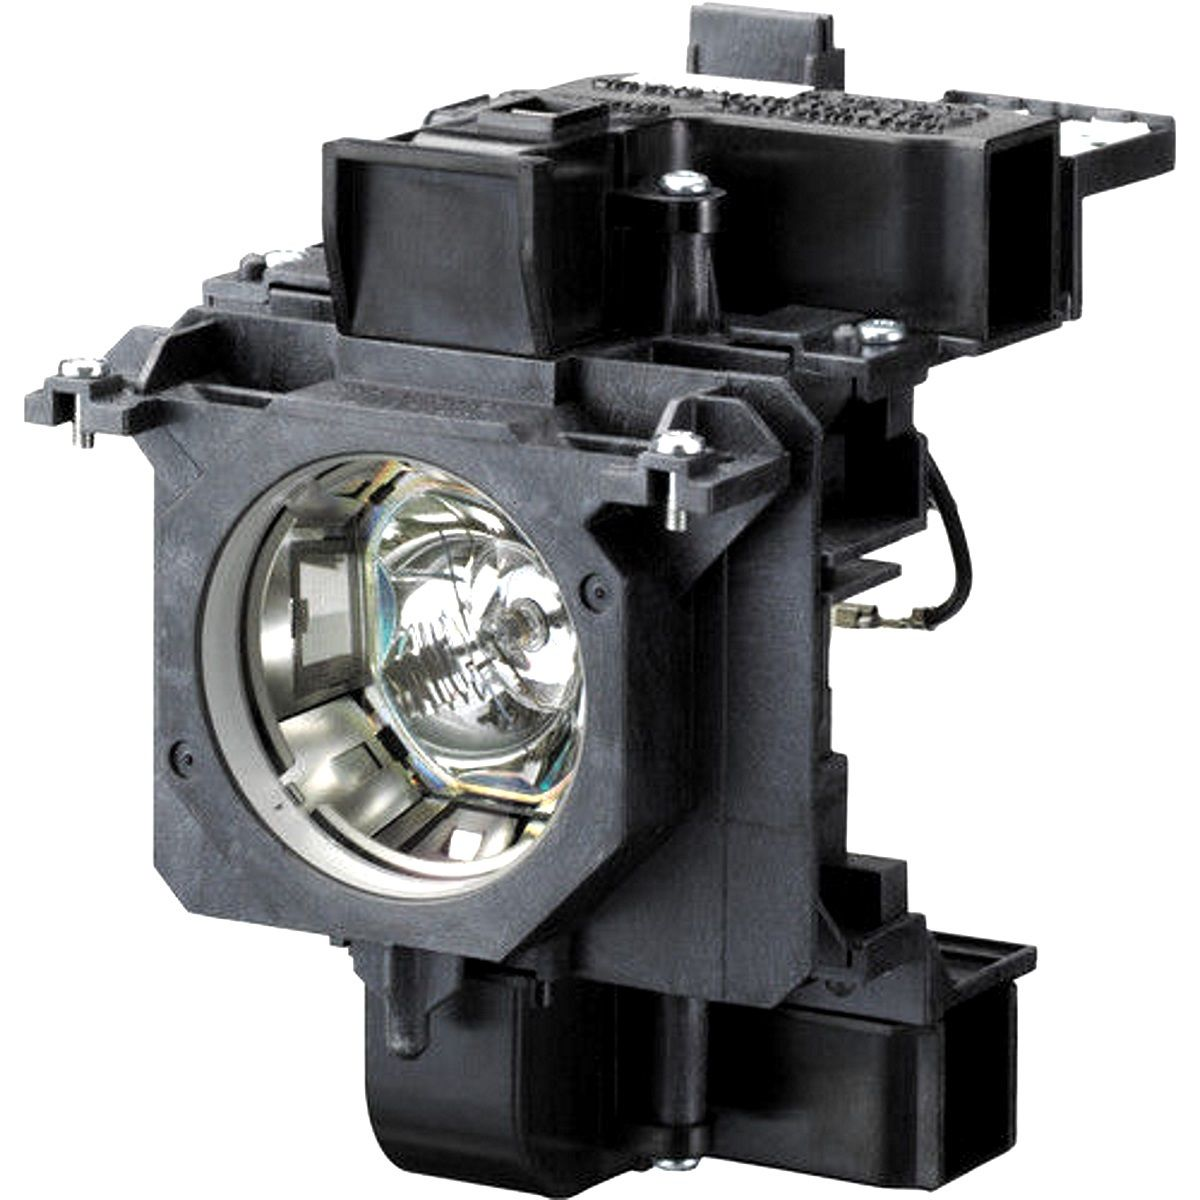 Projector Lamp Bulb ET-LAE200 ETLAE200 for Panasonic PT-EX600EL PT-EZ570E PT-EX600E PT-EZ570EL PT-EX500EL With Housing pt ae1000 pt ae2000 pt ae3000 projector lamp bulb et lae1000 for panasonic high quality totally new